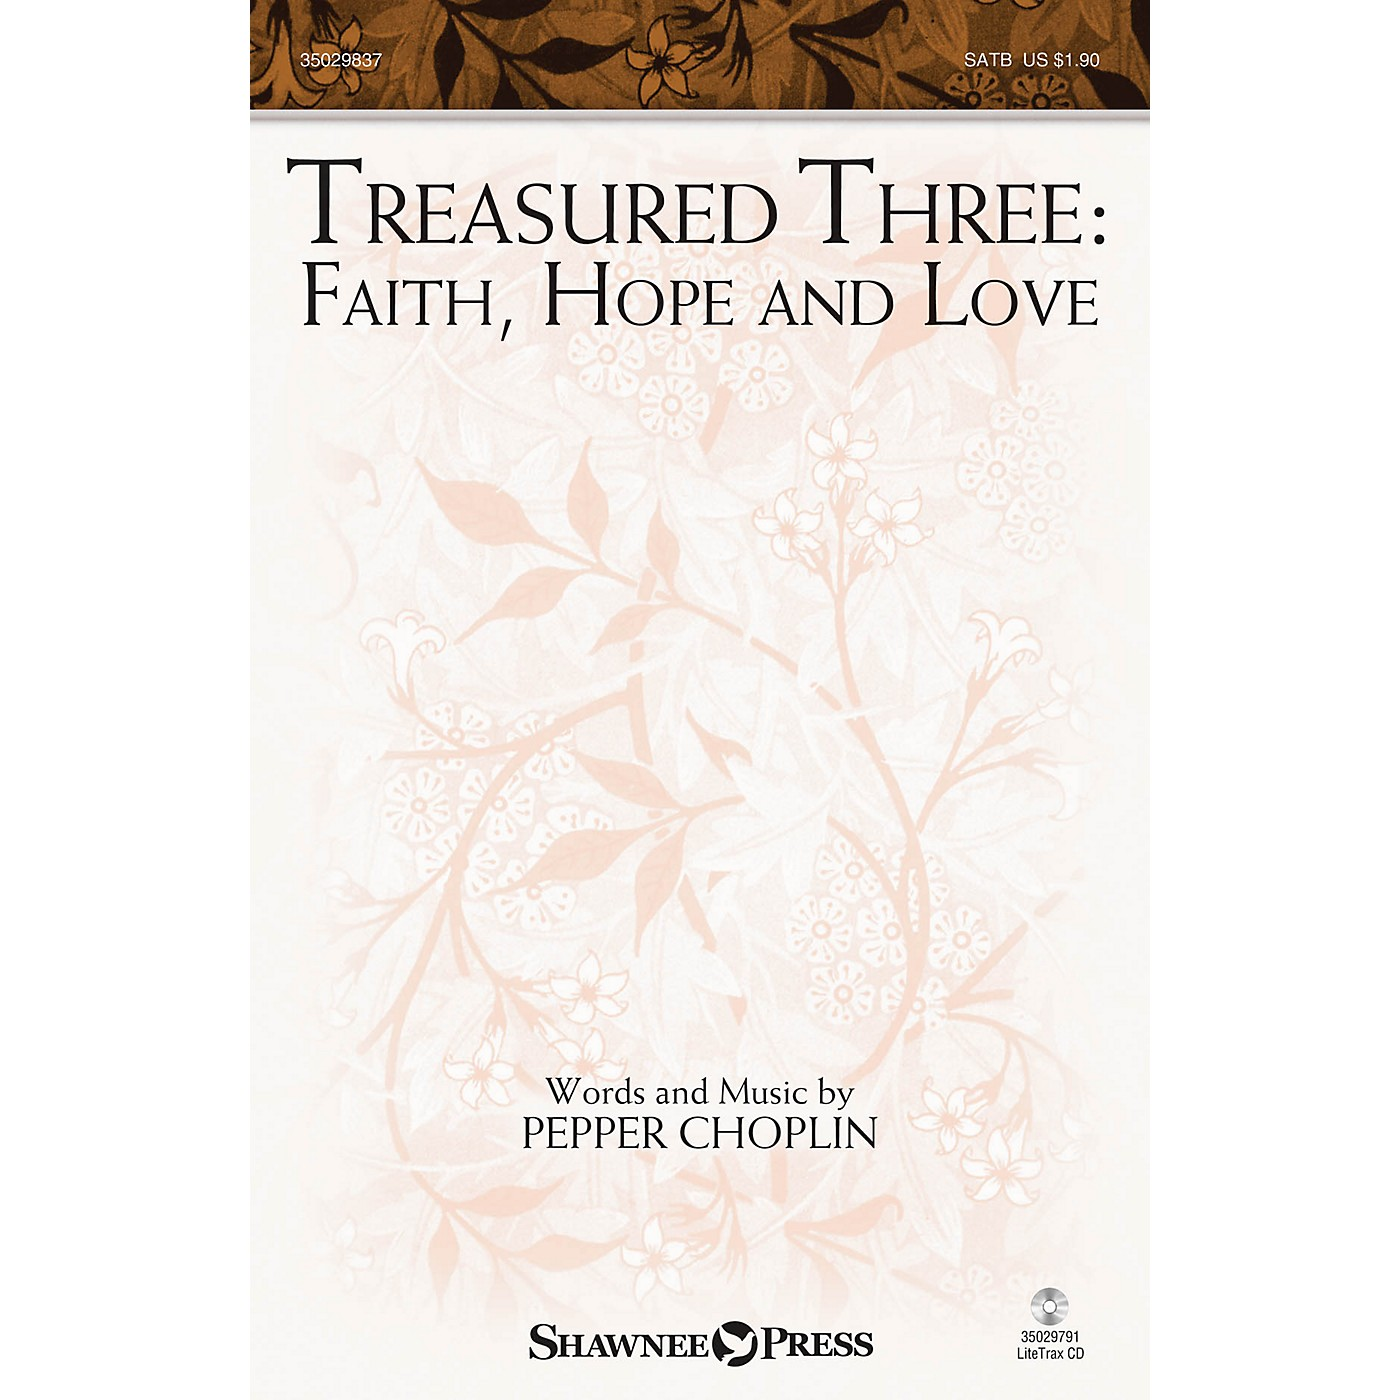 Shawnee Press Treasured Three: Faith, Hope And Love SATB thumbnail